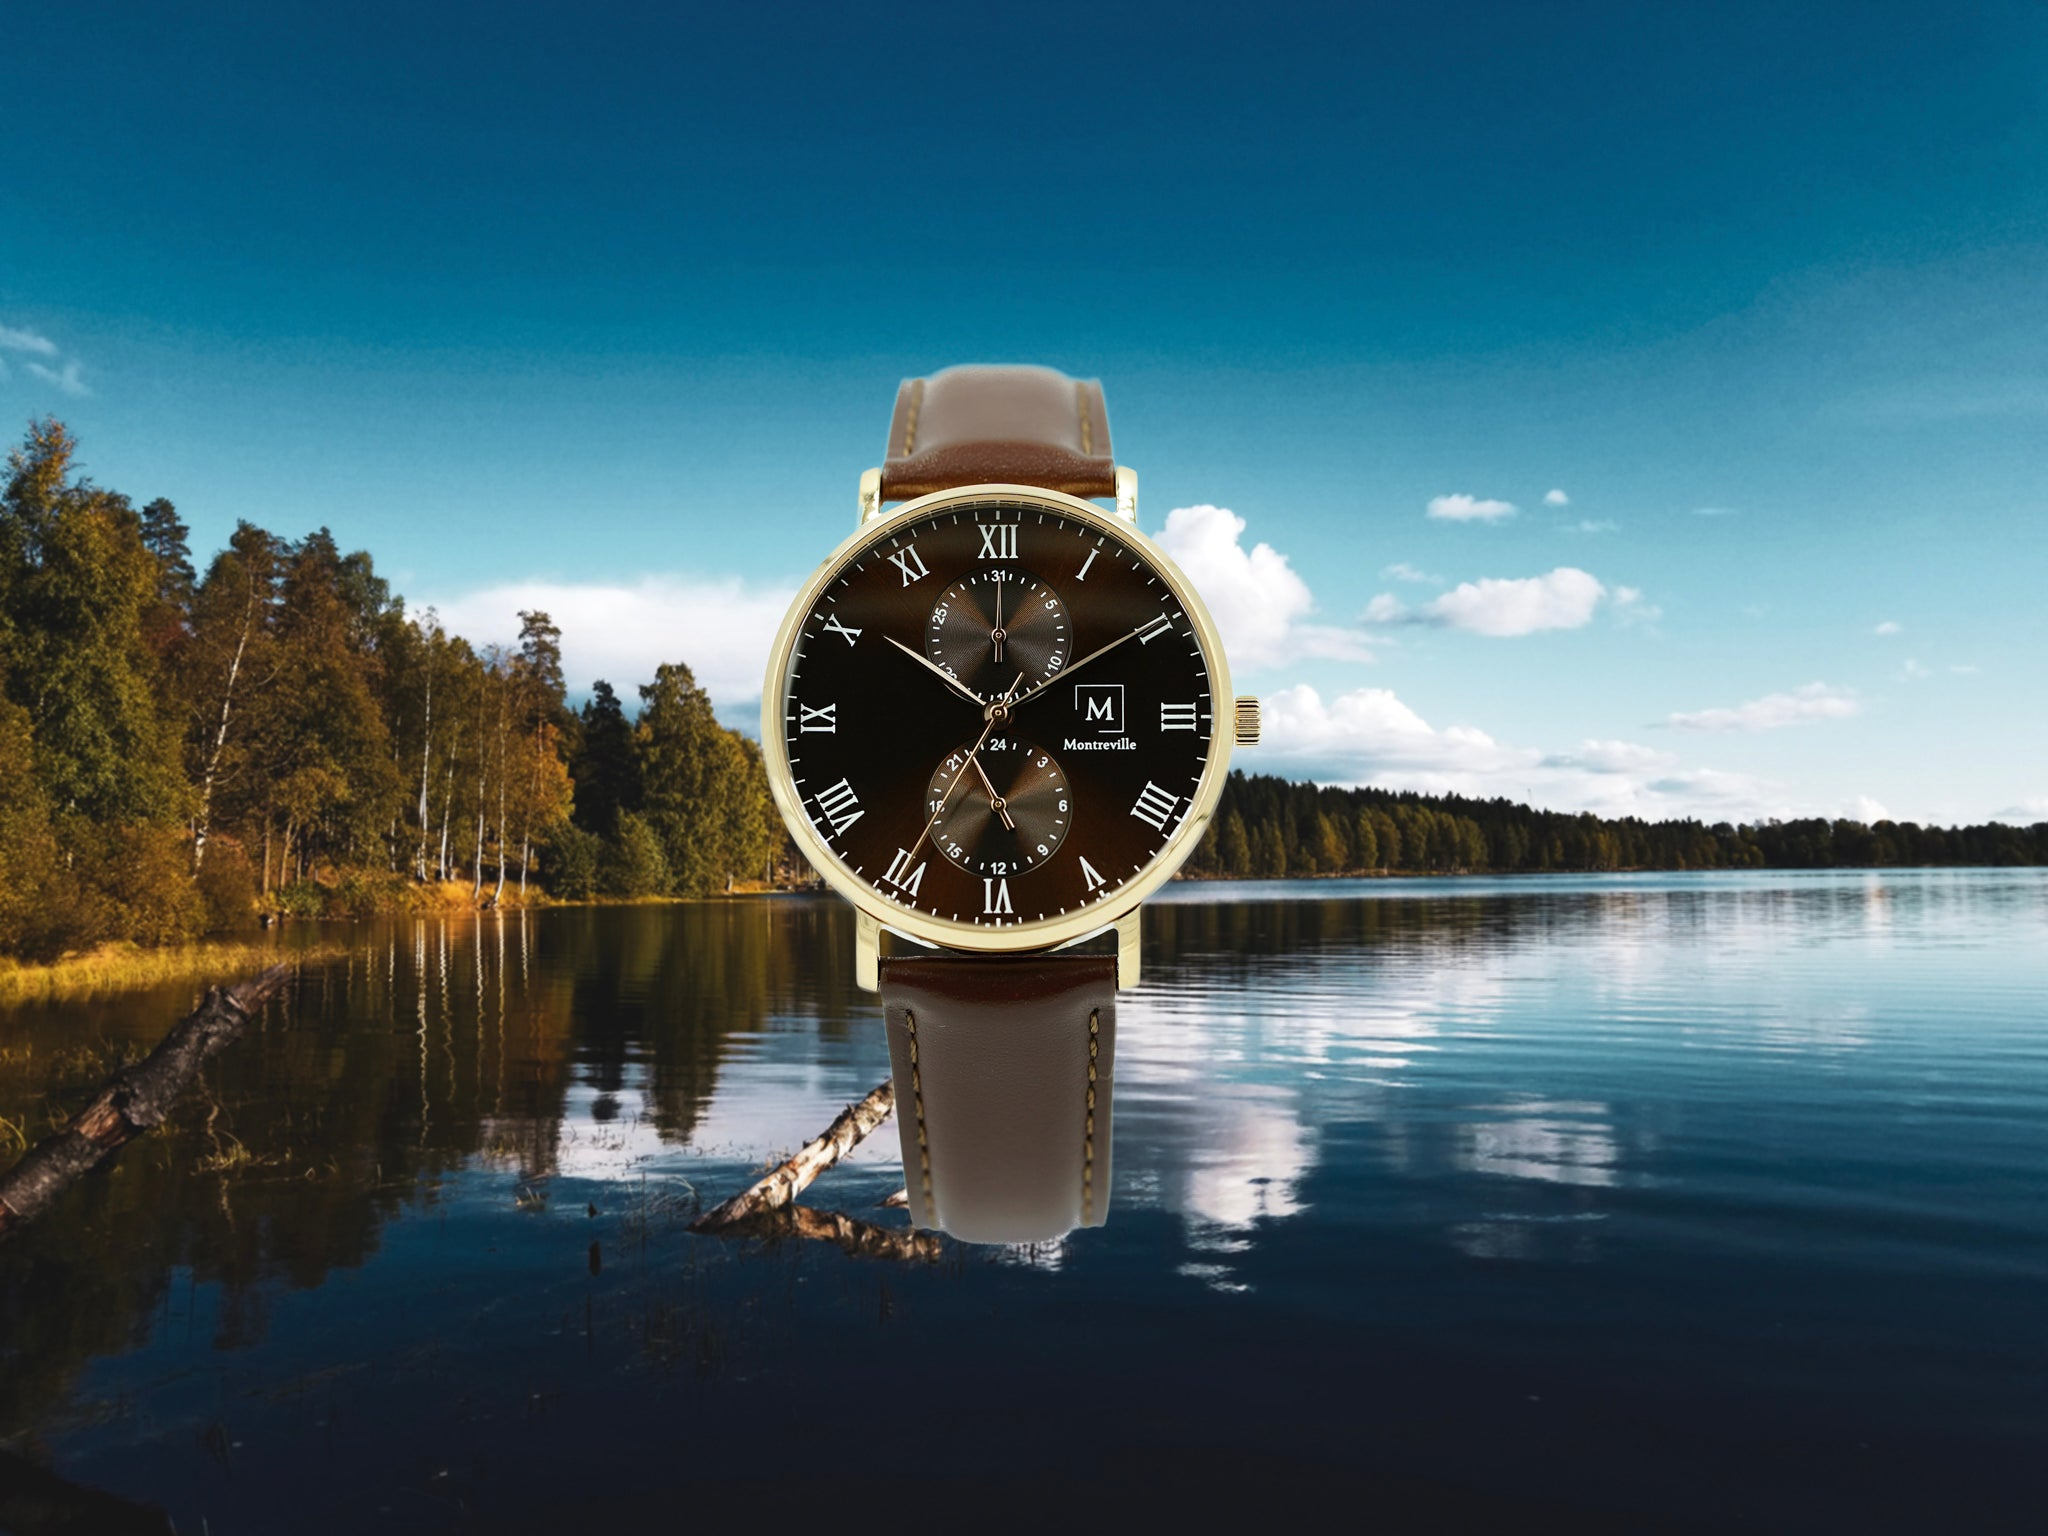 Brown watch called Oslo from the brand Montreville. This is an image of the watch with a picture of a lake and forest in the city of Oslo in the background. The timepiece has an elegant design with roman numerals in white and a dark brown leather strap. The case is rosé gold.